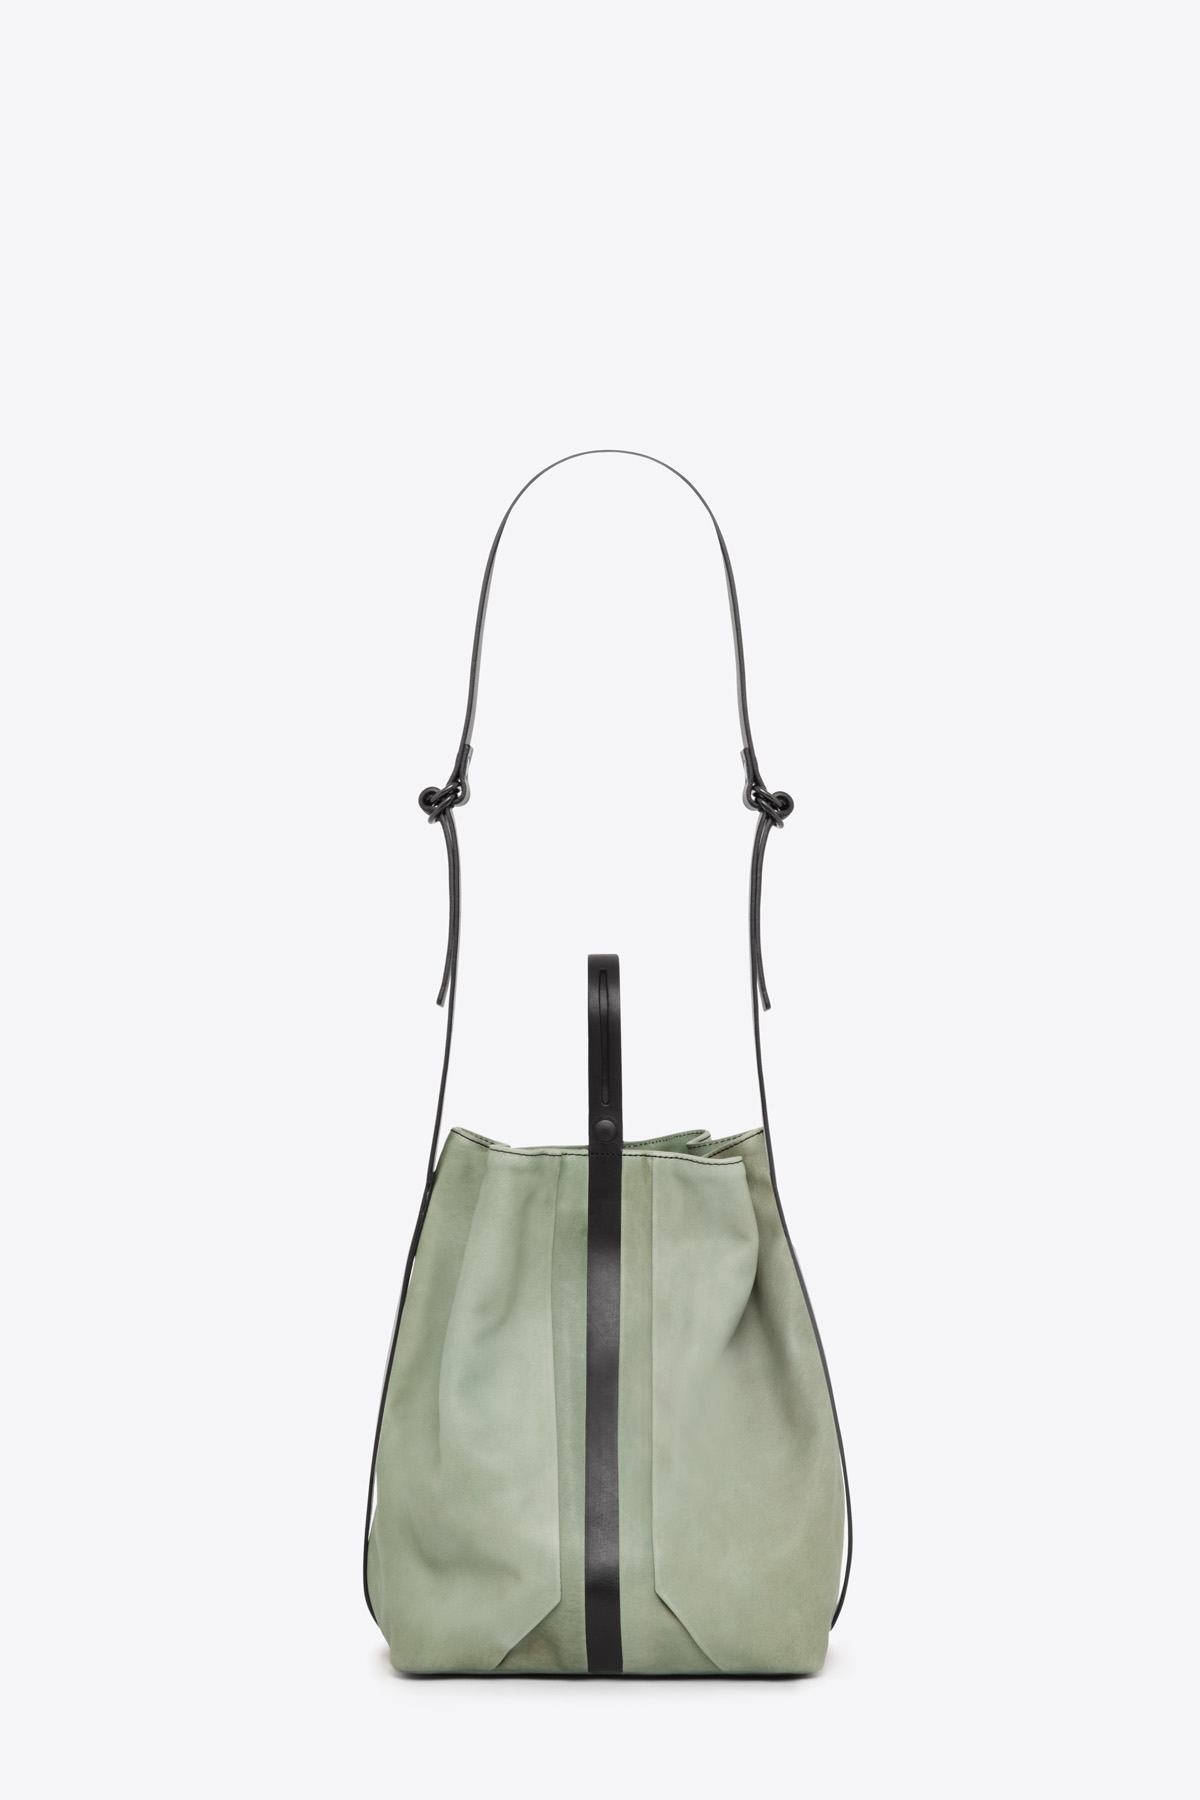 dclr010-bucketbag-a9-jadegreen-back